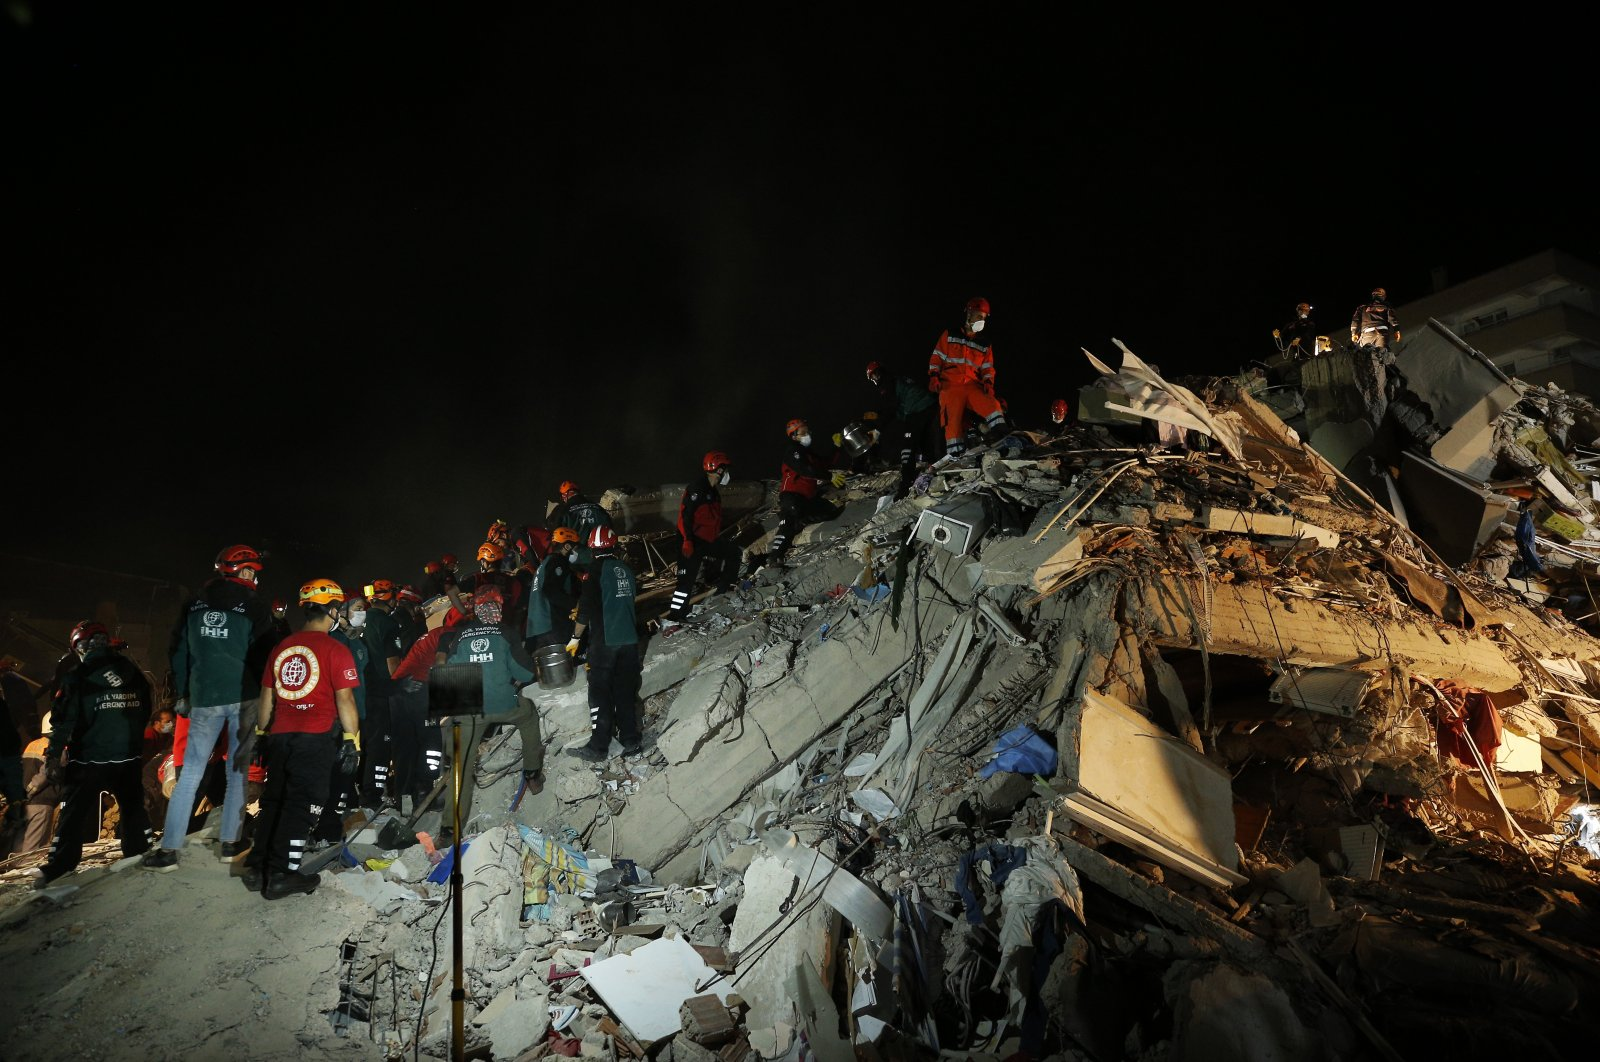 Members of rescue services search in the debris of a collapsed building for survivors in Izmir, Turkey, early Saturday, Oct. 31, 2020. (AP Photo)